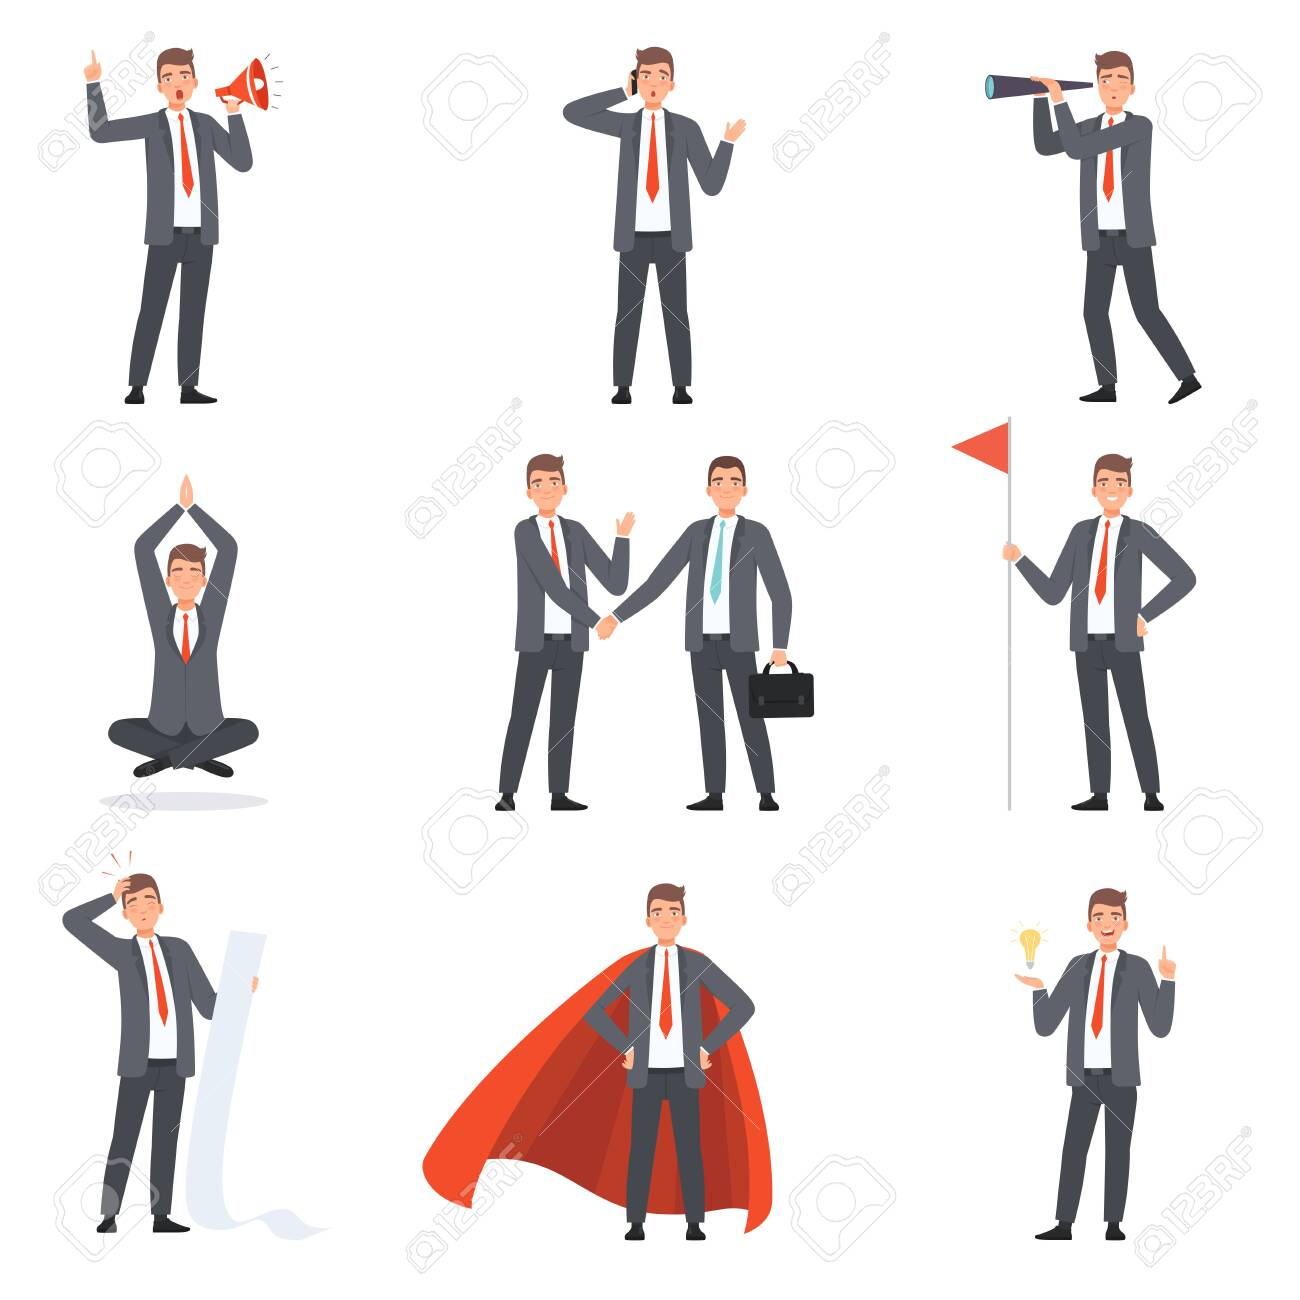 Businessmen characters, people in business suits in different situations vector illustration - 131192188